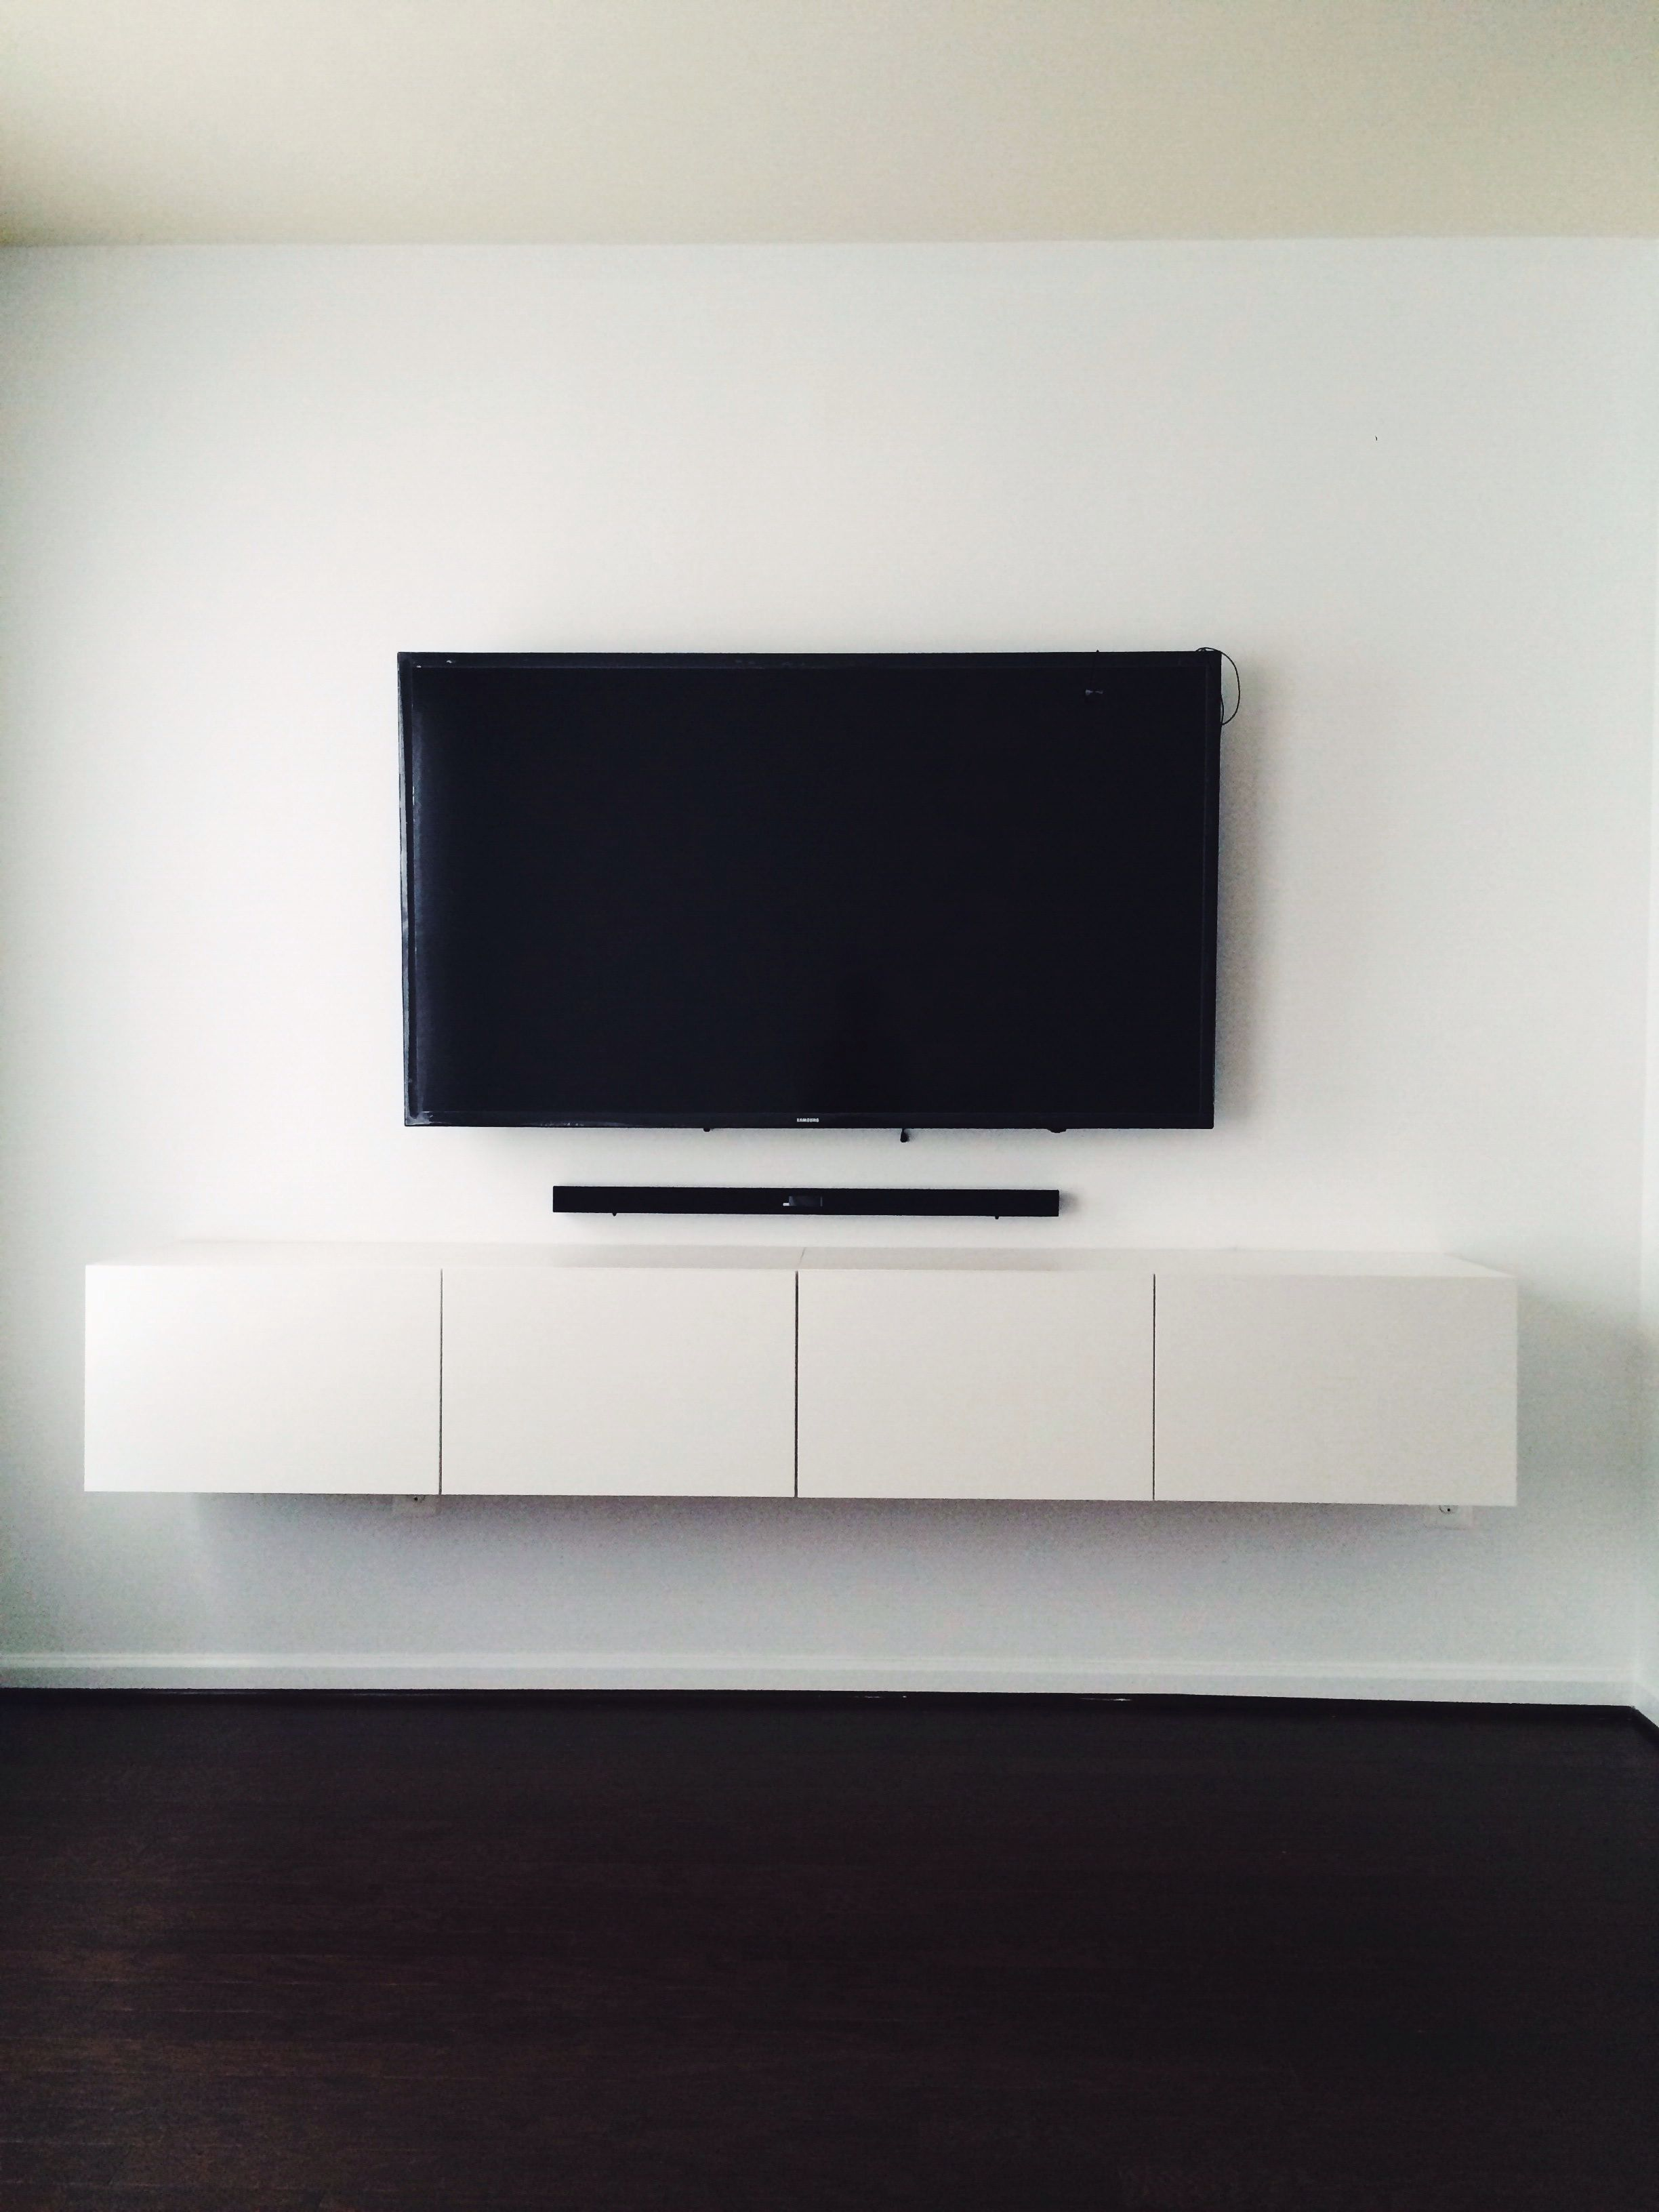 Wall Mounted Tv Console Ideas Ikea BestÅ Media Console Mounted Tv With Hidden Wires